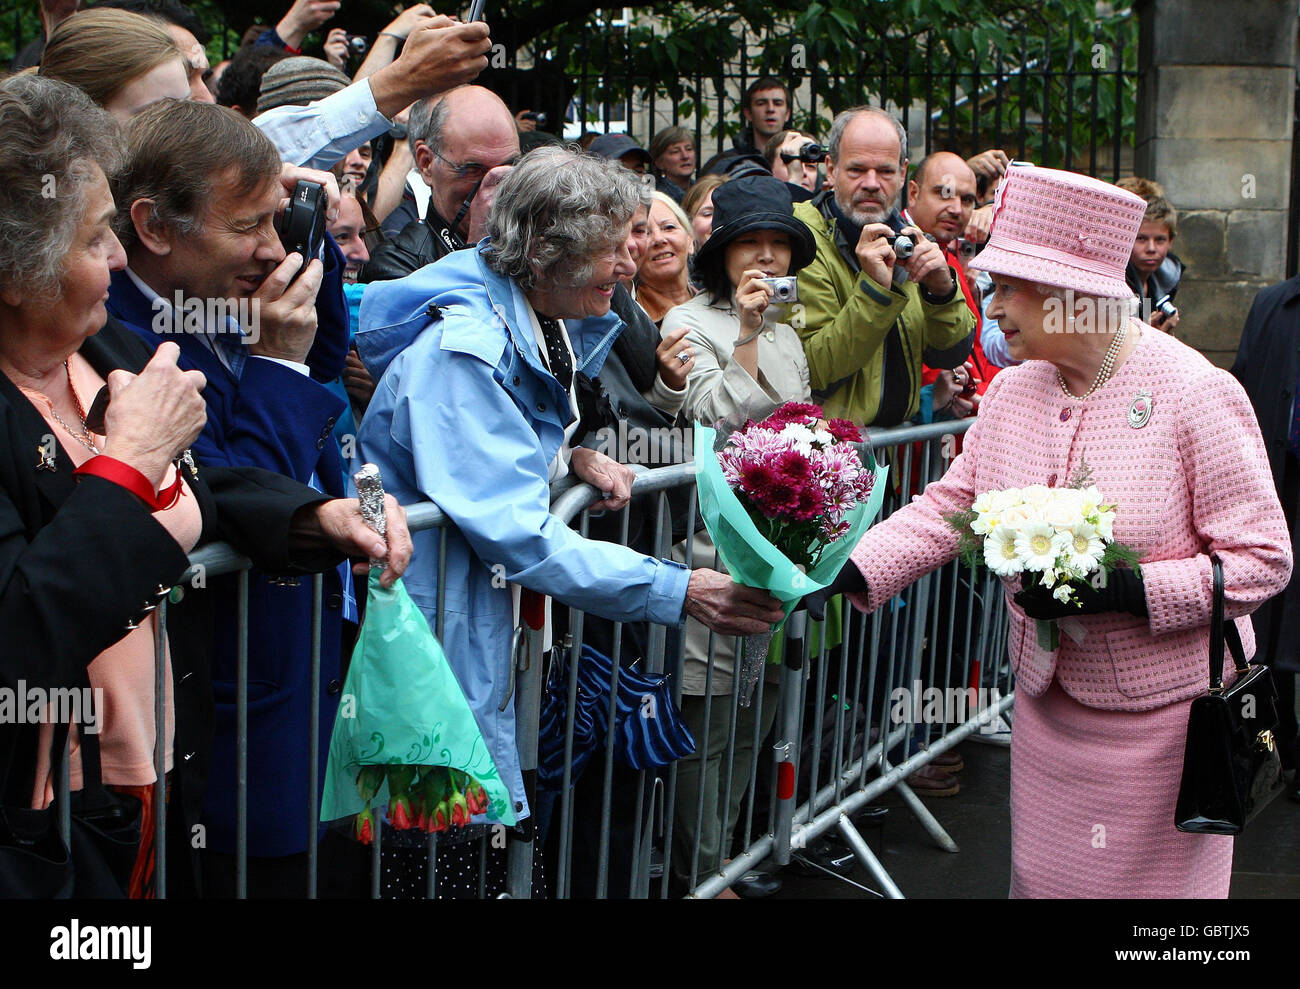 Britain's Queen Elizabeth II meets members of the public after attending a service at Cannongate Church in Edinburgh. Stock Photo